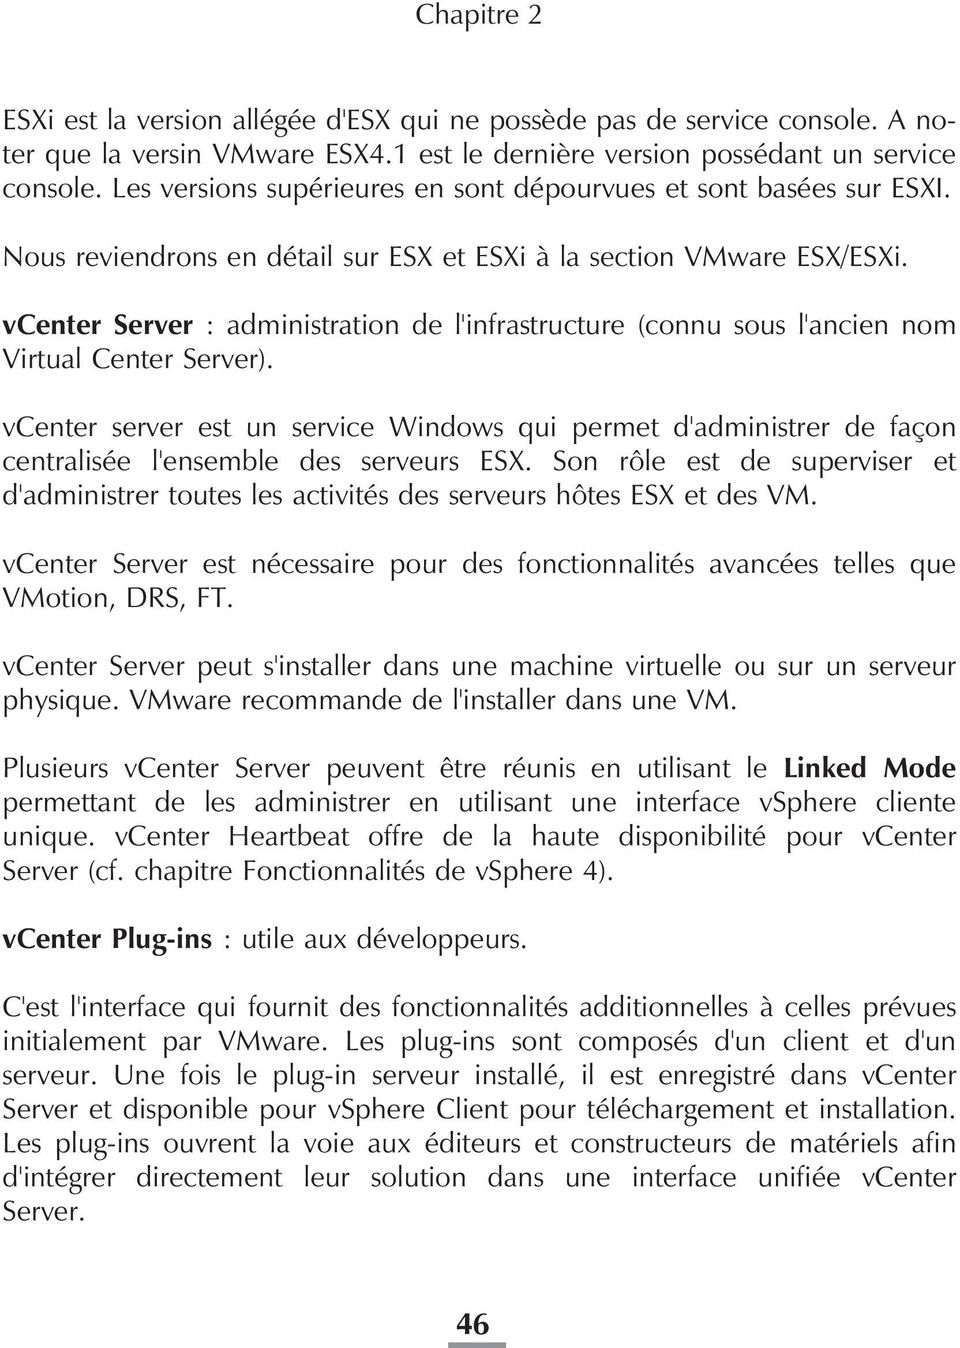 vcenter Server : administration de l'infrastructure (connu sous l'ancien nom Virtual Center Server).